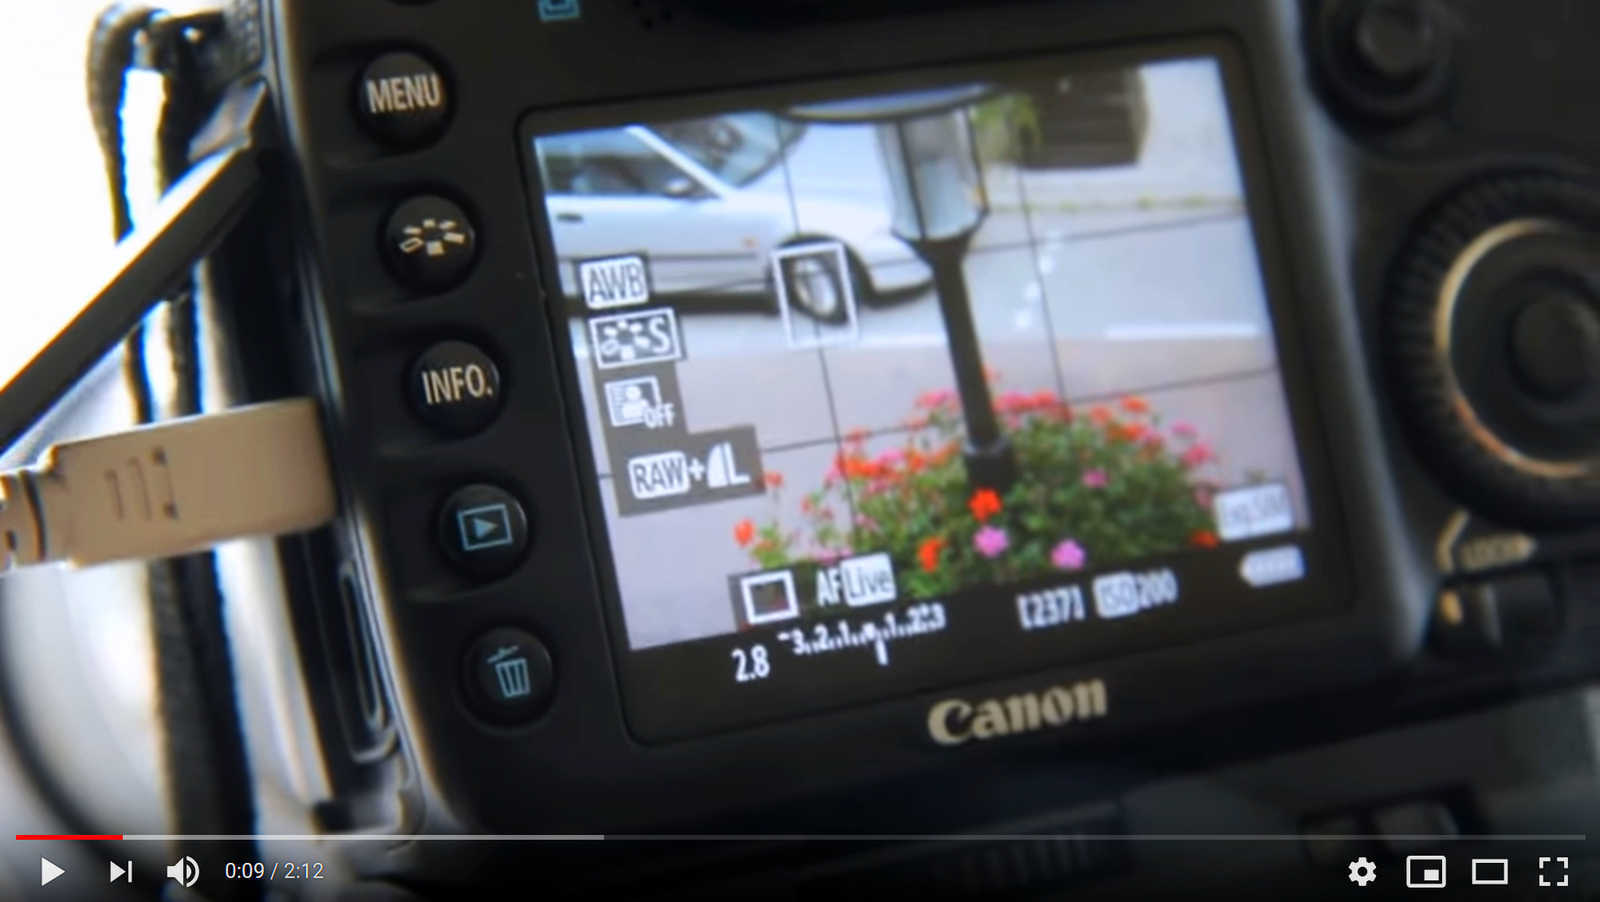 Control Canon cameras with an Android device